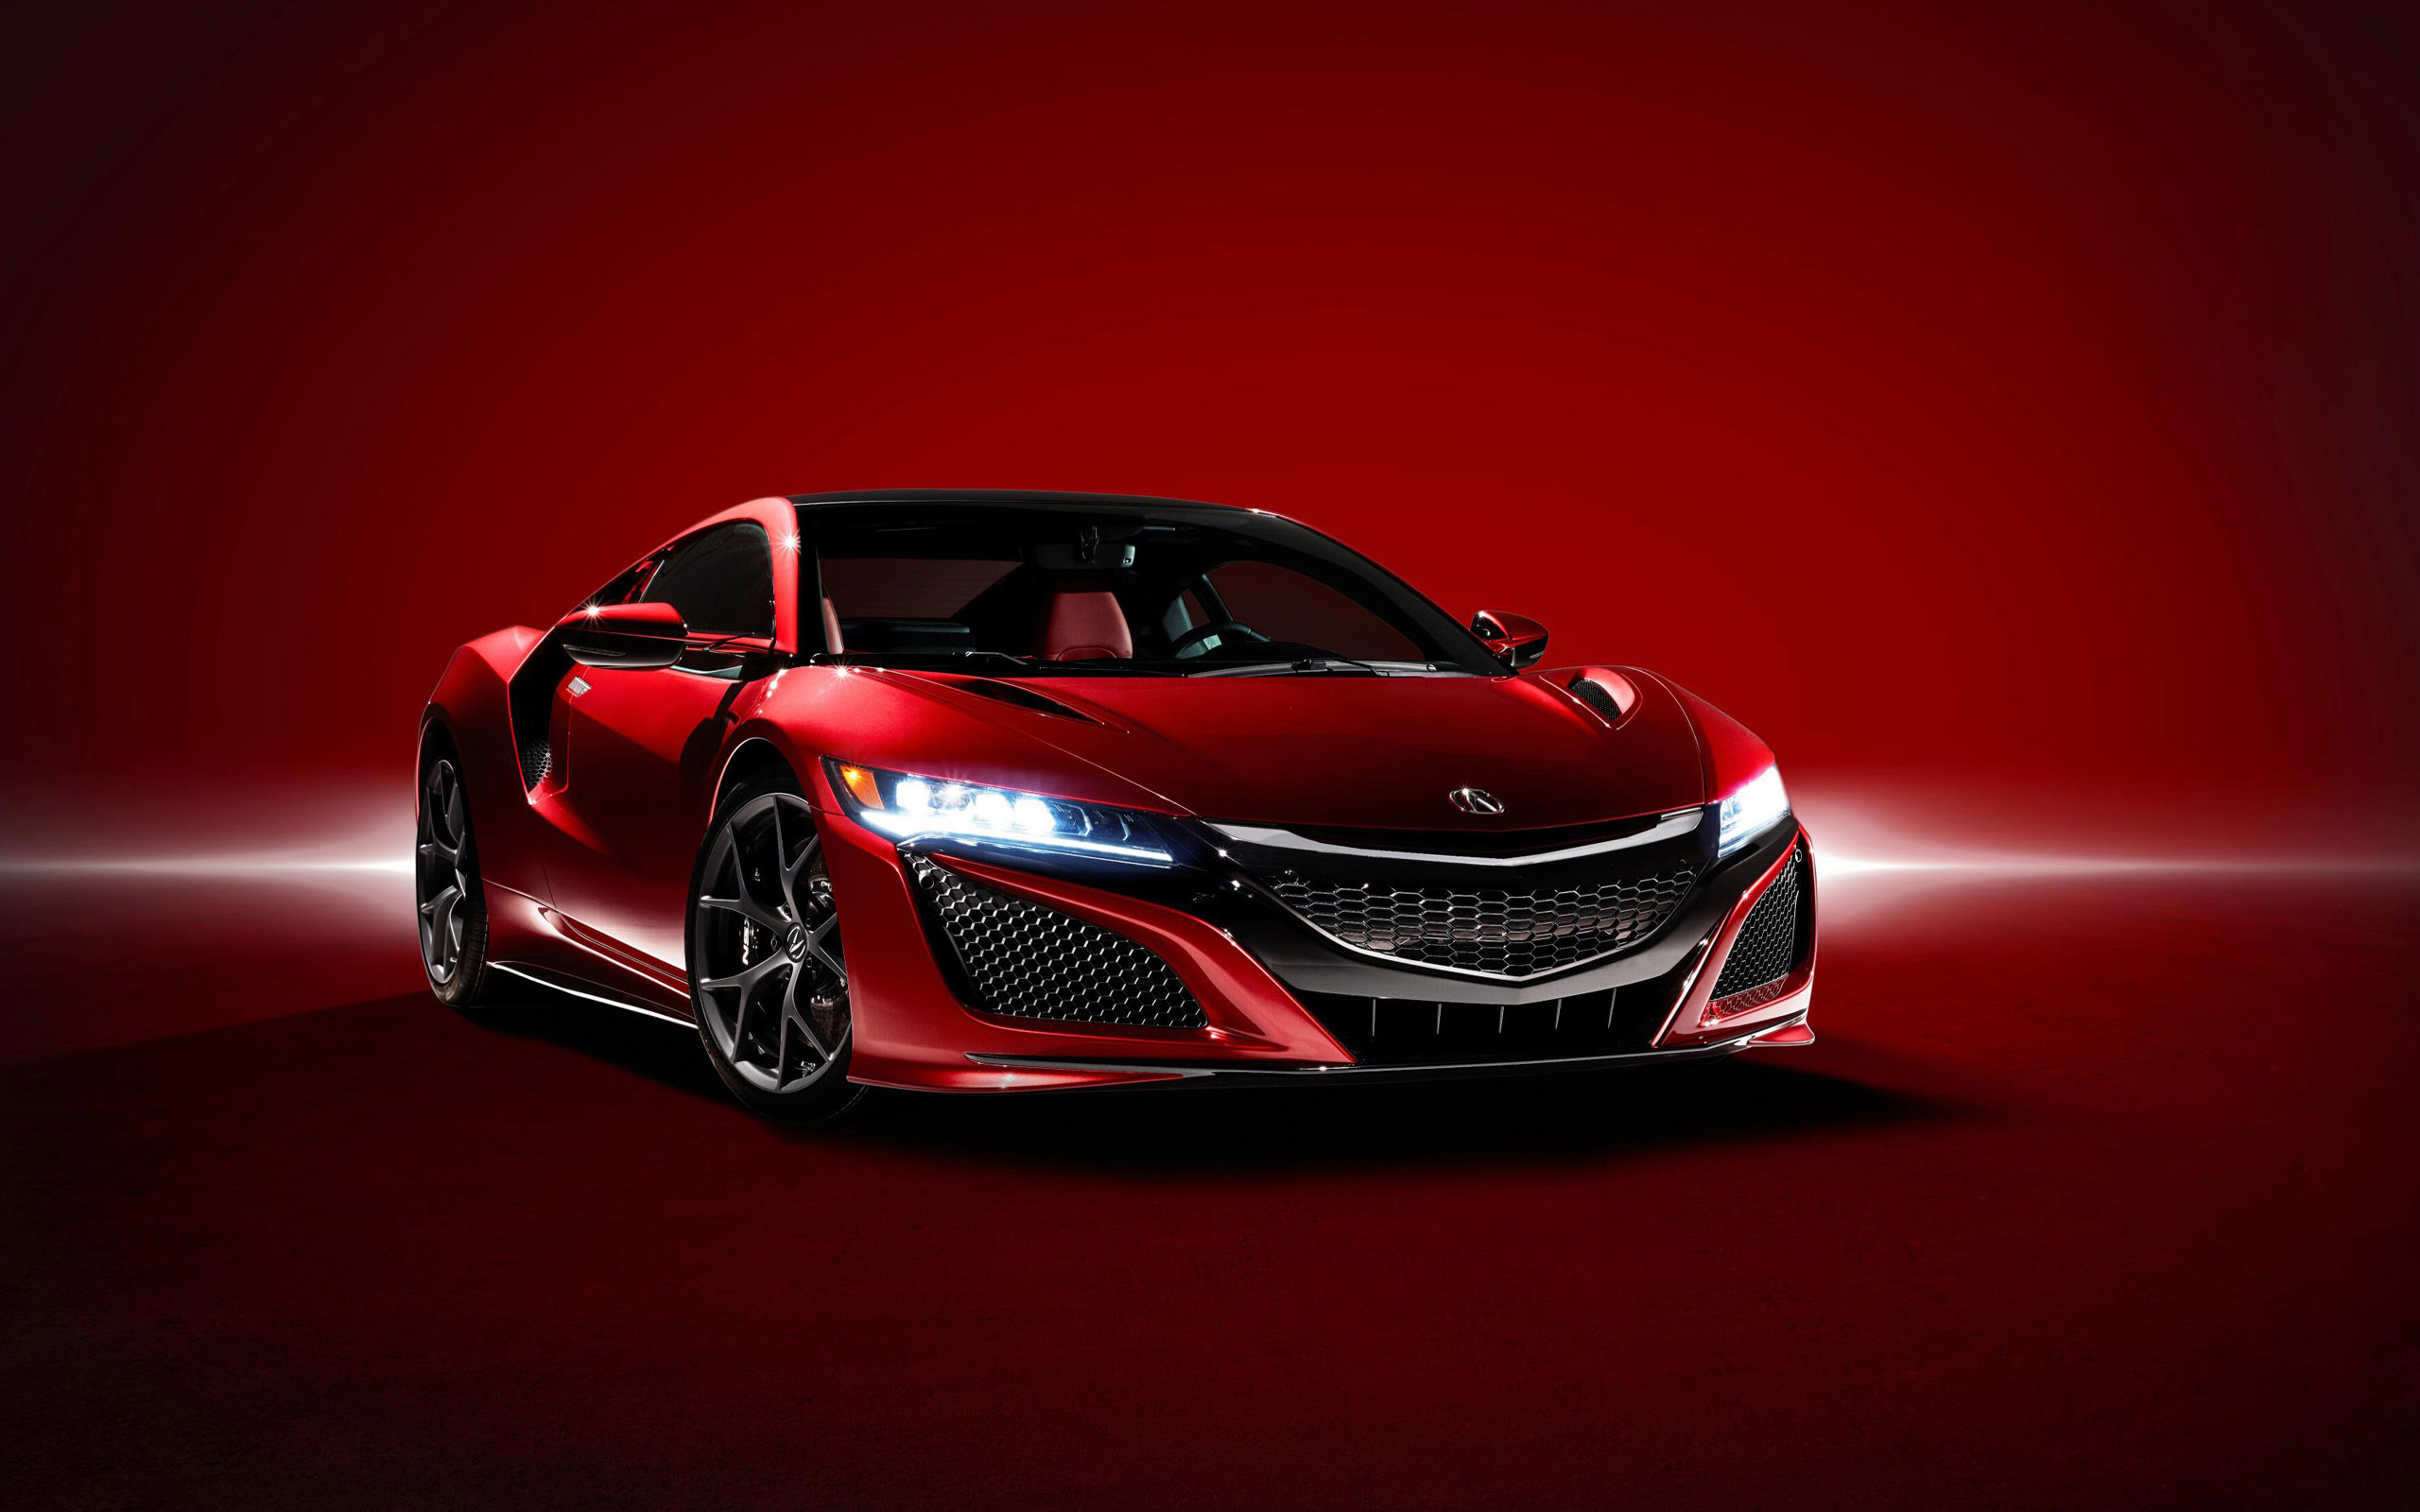 2016 Acura NSX Supercar Wallpaper | HD Car Wallpapers